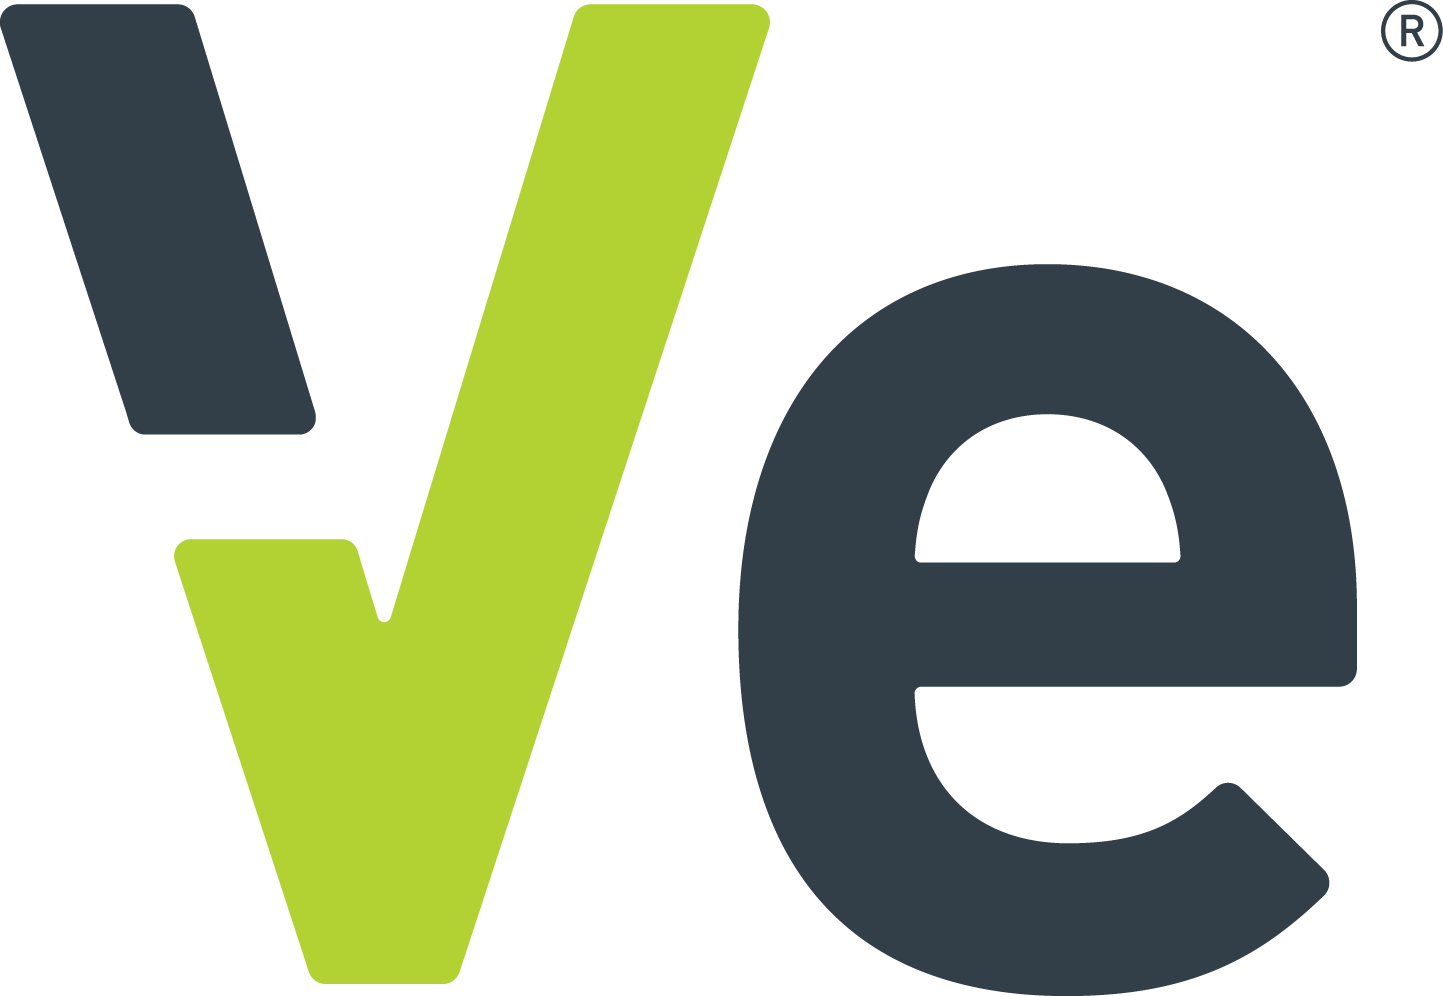 ve_interactive_logo